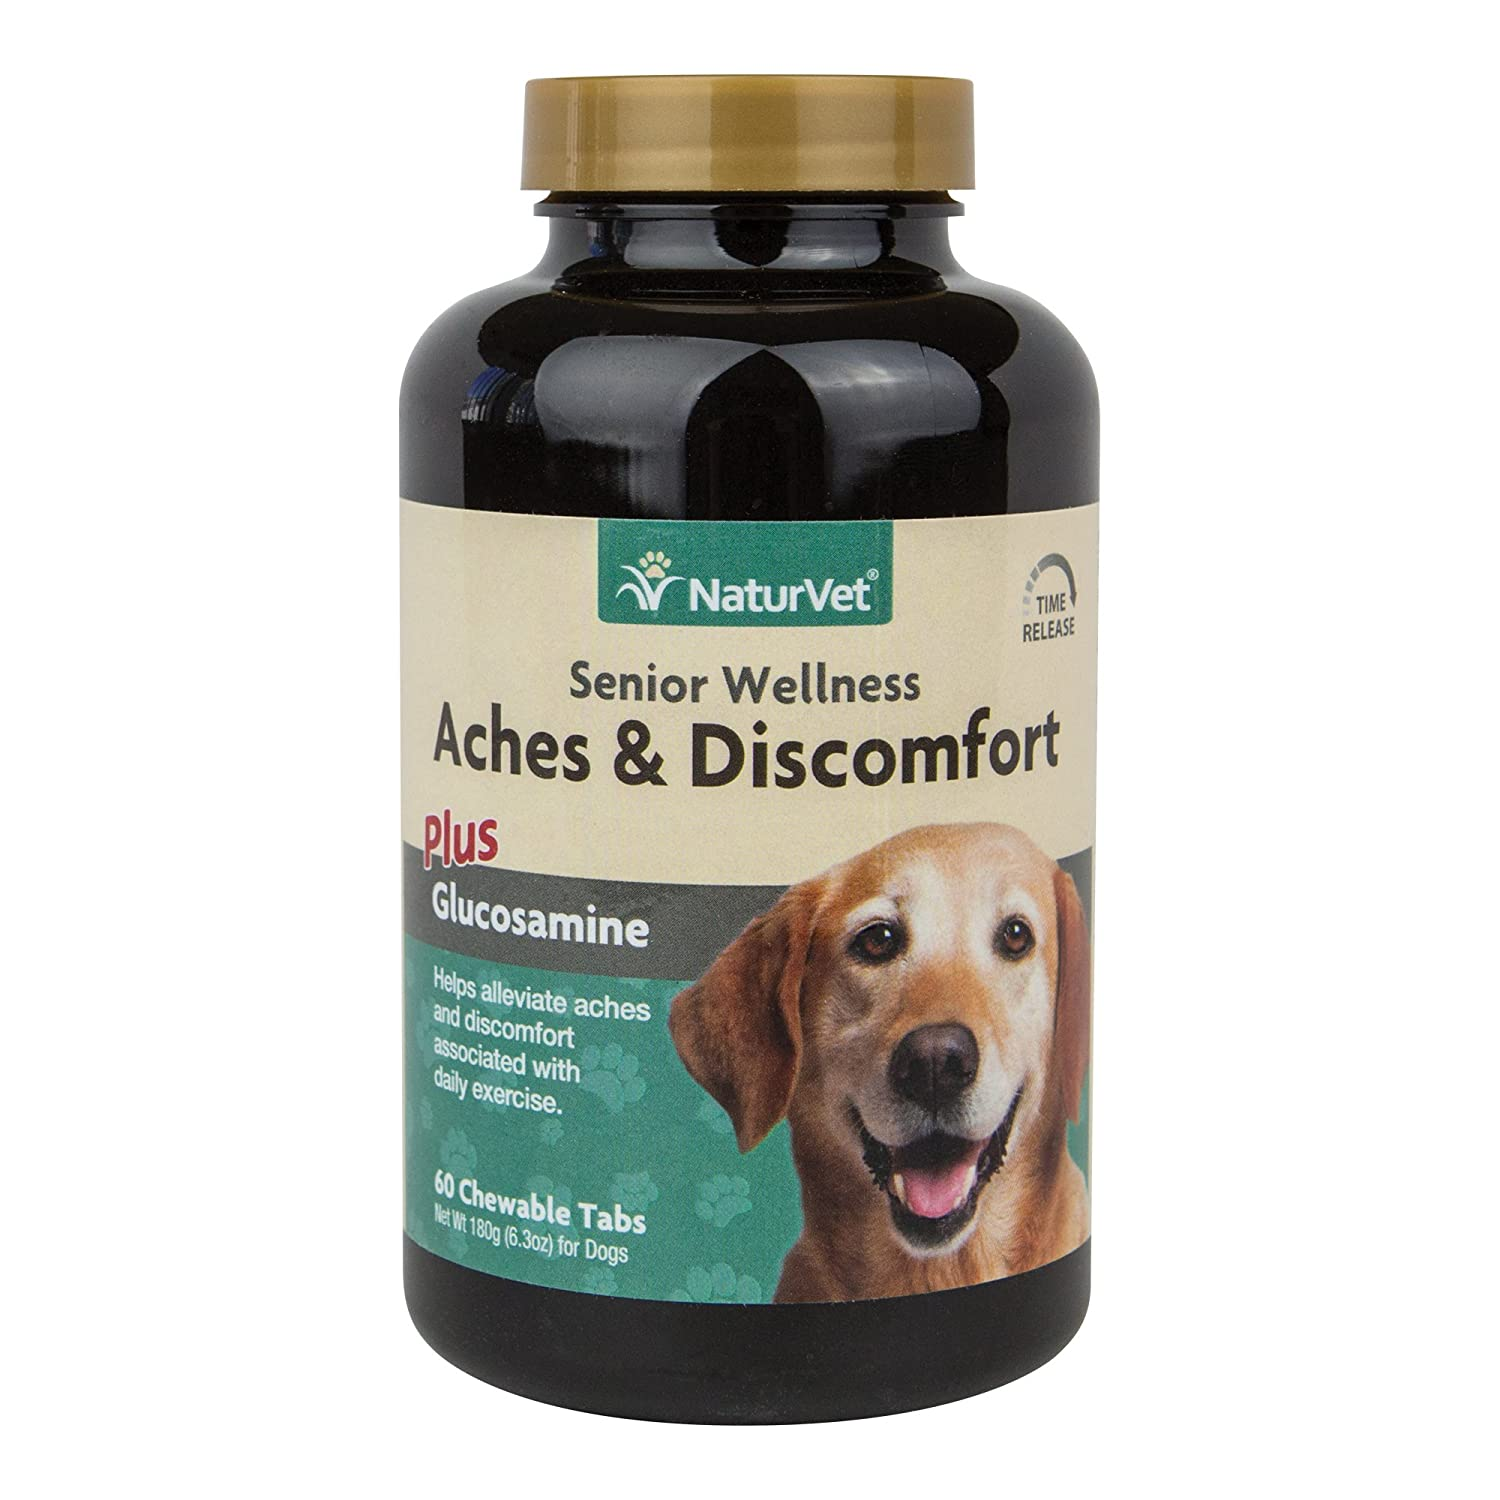 NaturVet 60 Count Senior Aches and Discomfort Tablets for Dogs